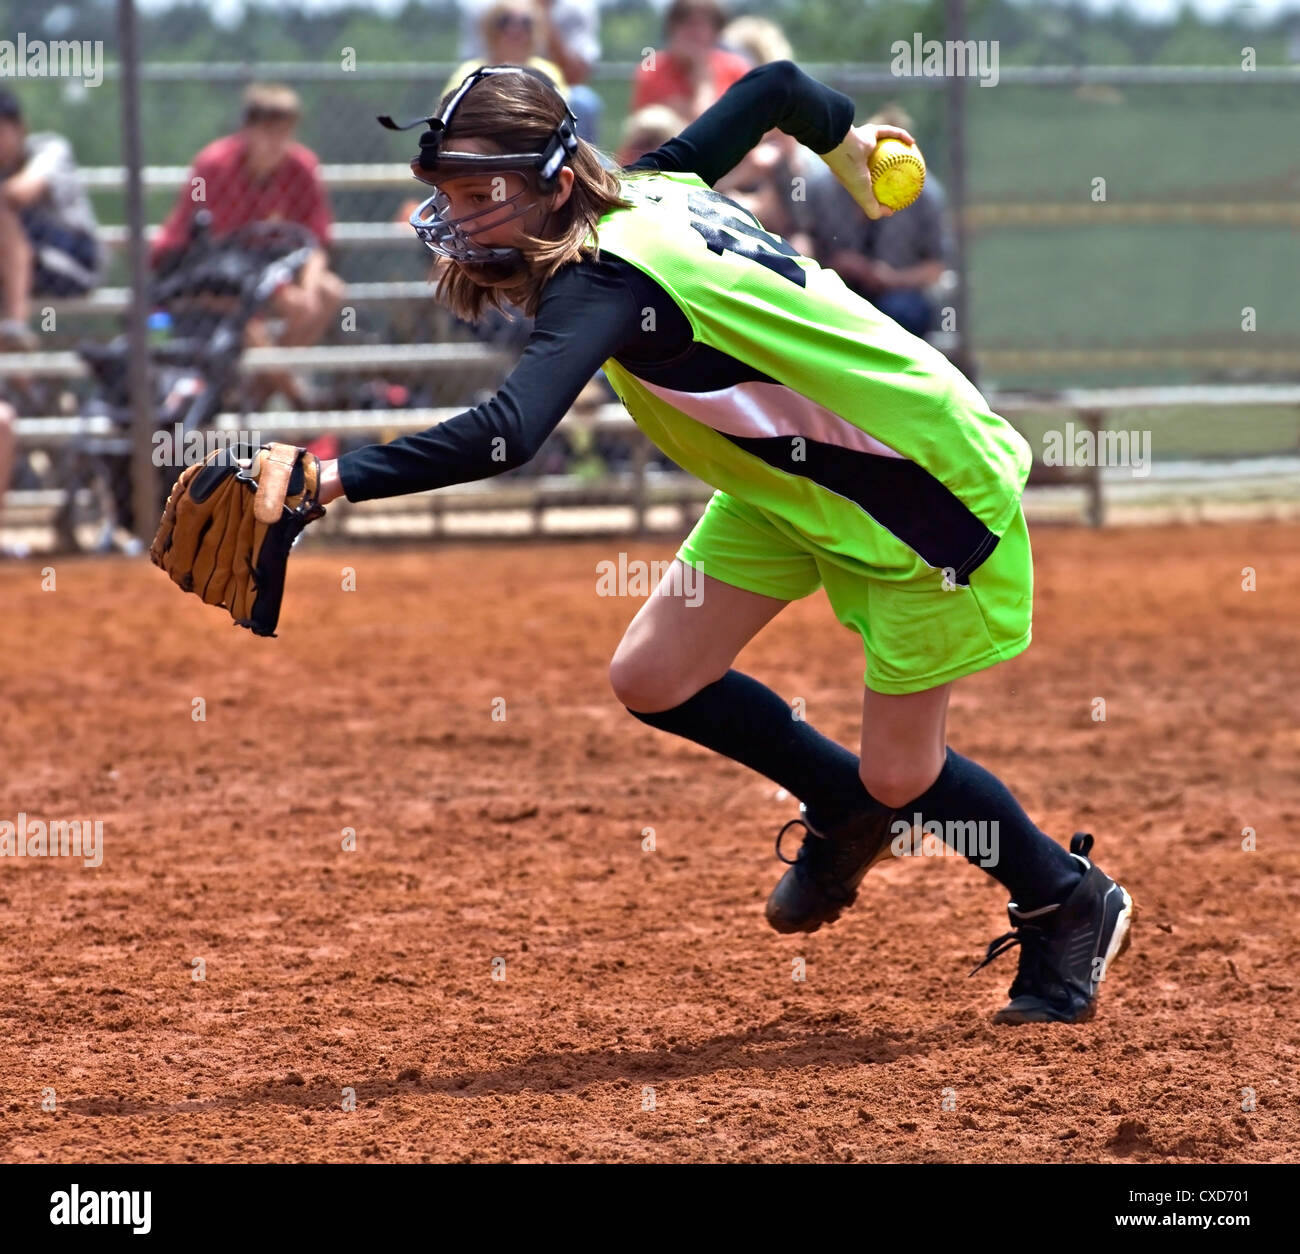 A young pitcher with ball in hand racing to make an out in a softball game. - Stock Image